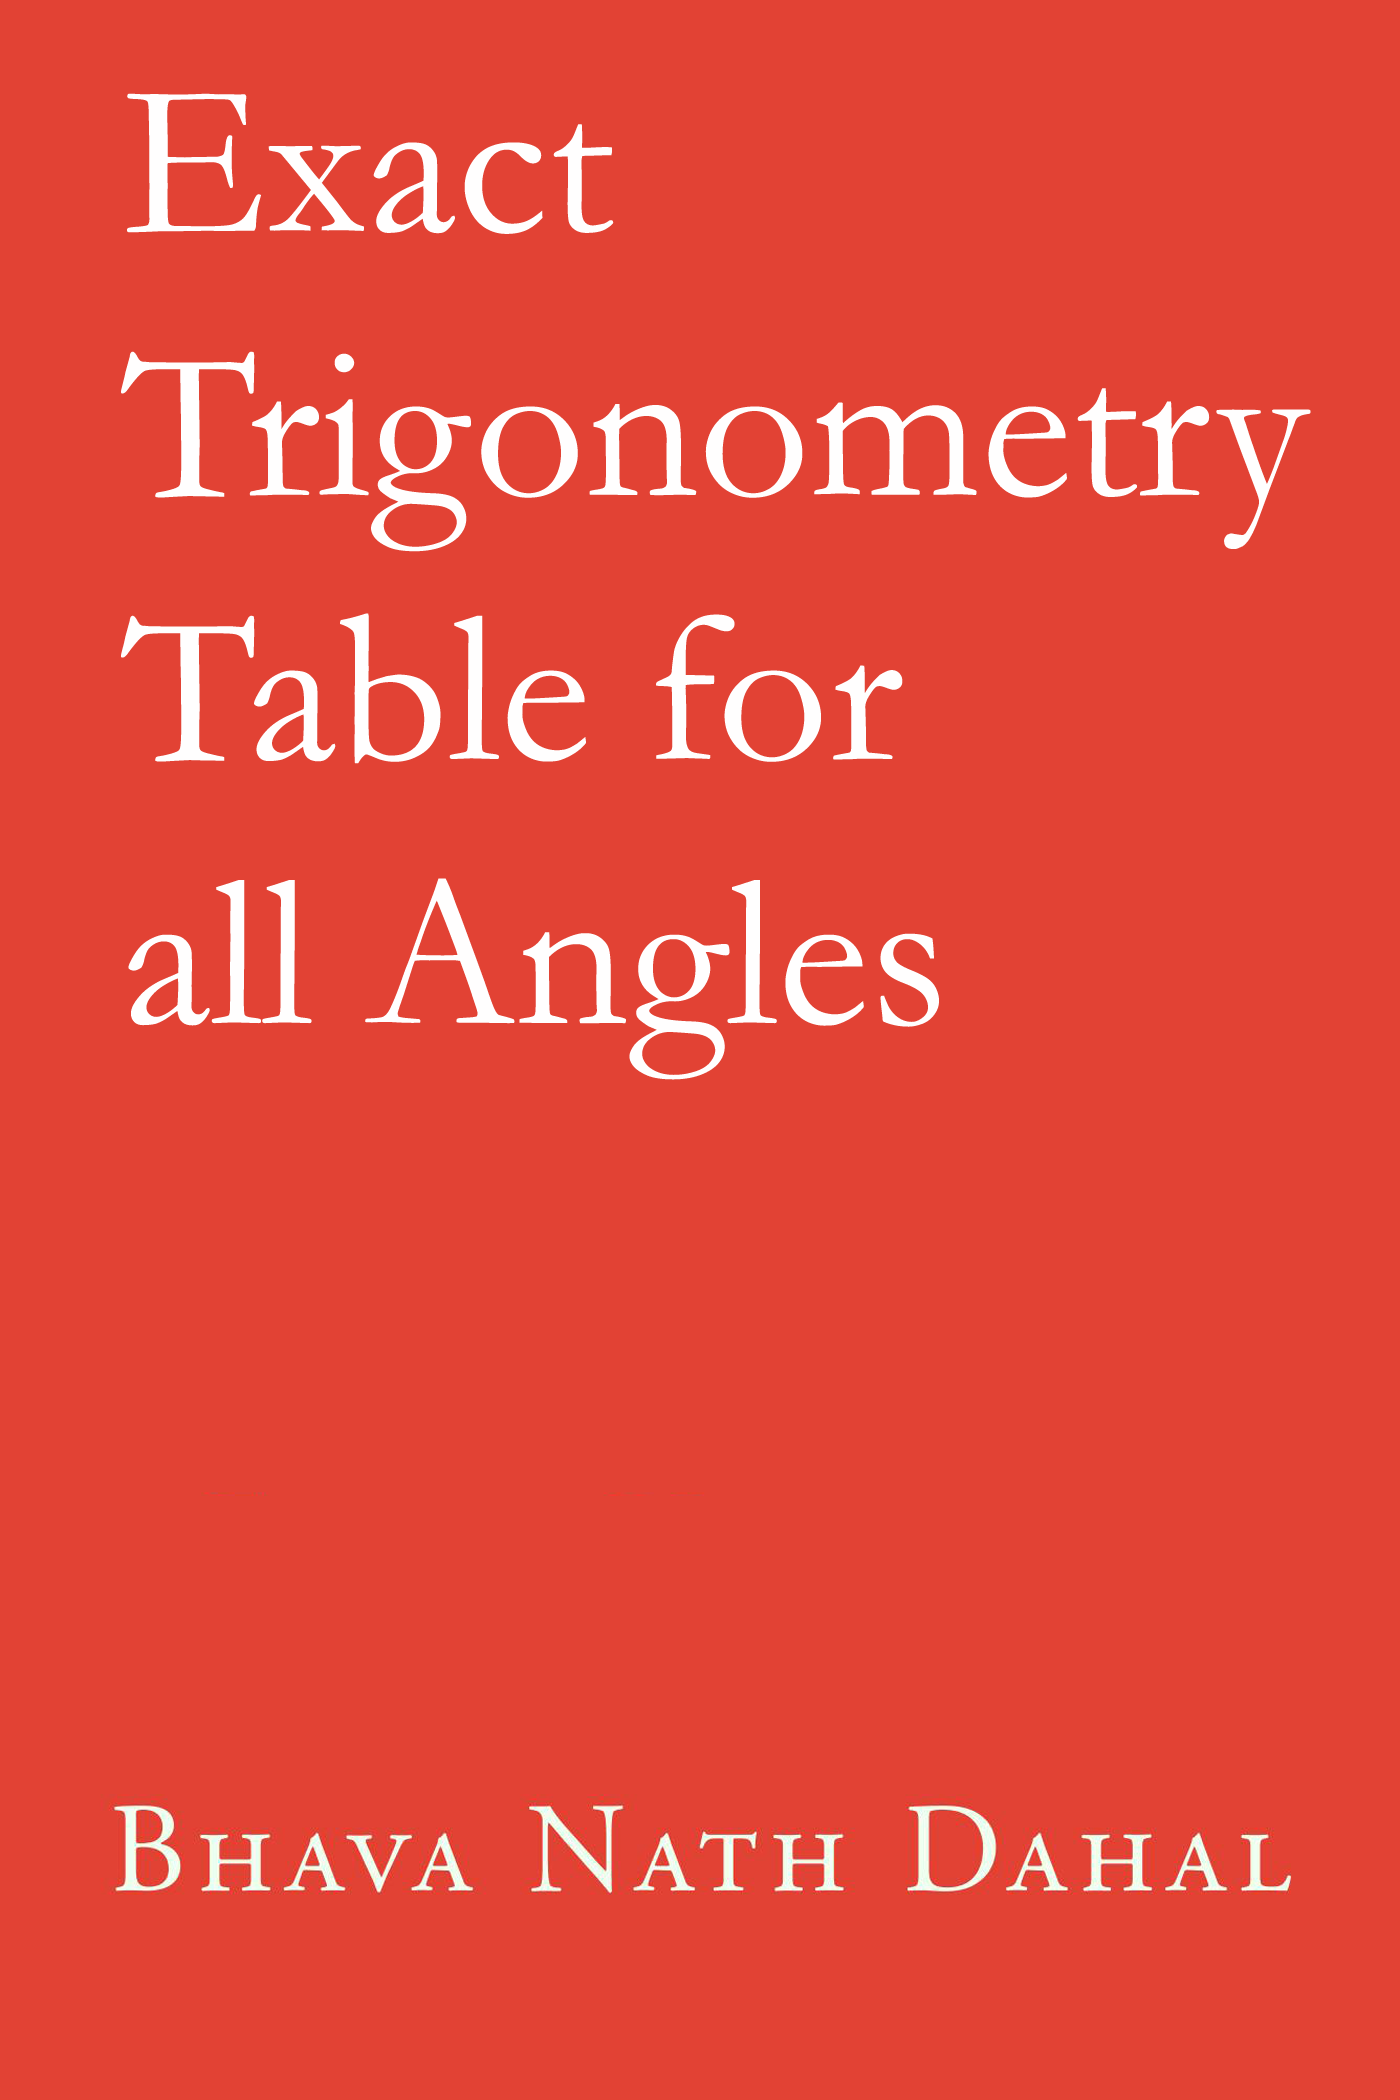 Exact trigonometry table for all angles: and polygons